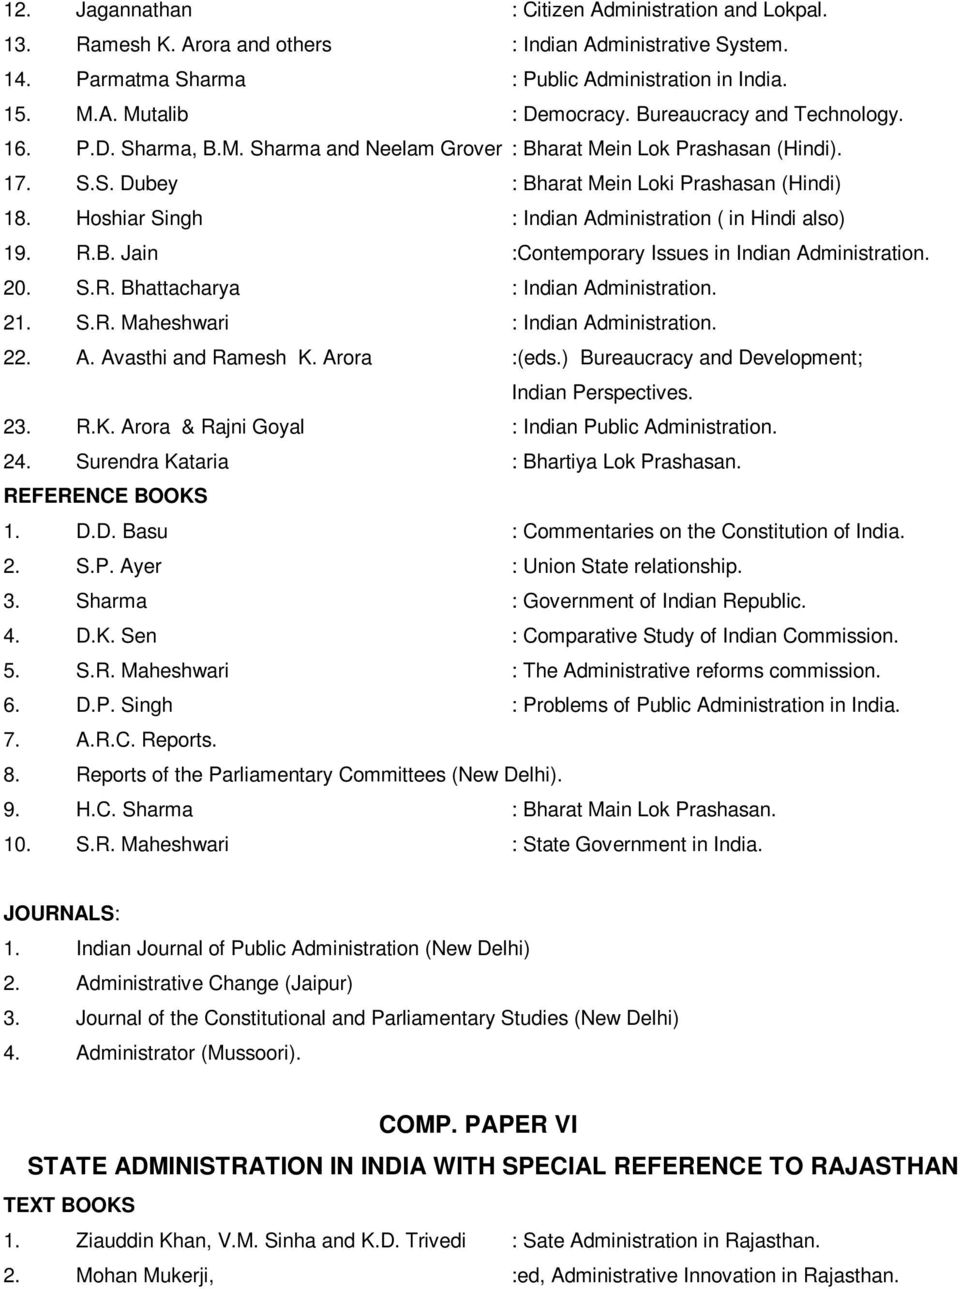 Hoshiar Singh : Indian Administration ( in Hindi also) 19. R.B. Jain :Contemporary Issues in Indian Administration. 20. S.R. Bhattacharya : Indian Administration. 21. S.R. Maheshwari : Indian Administration.